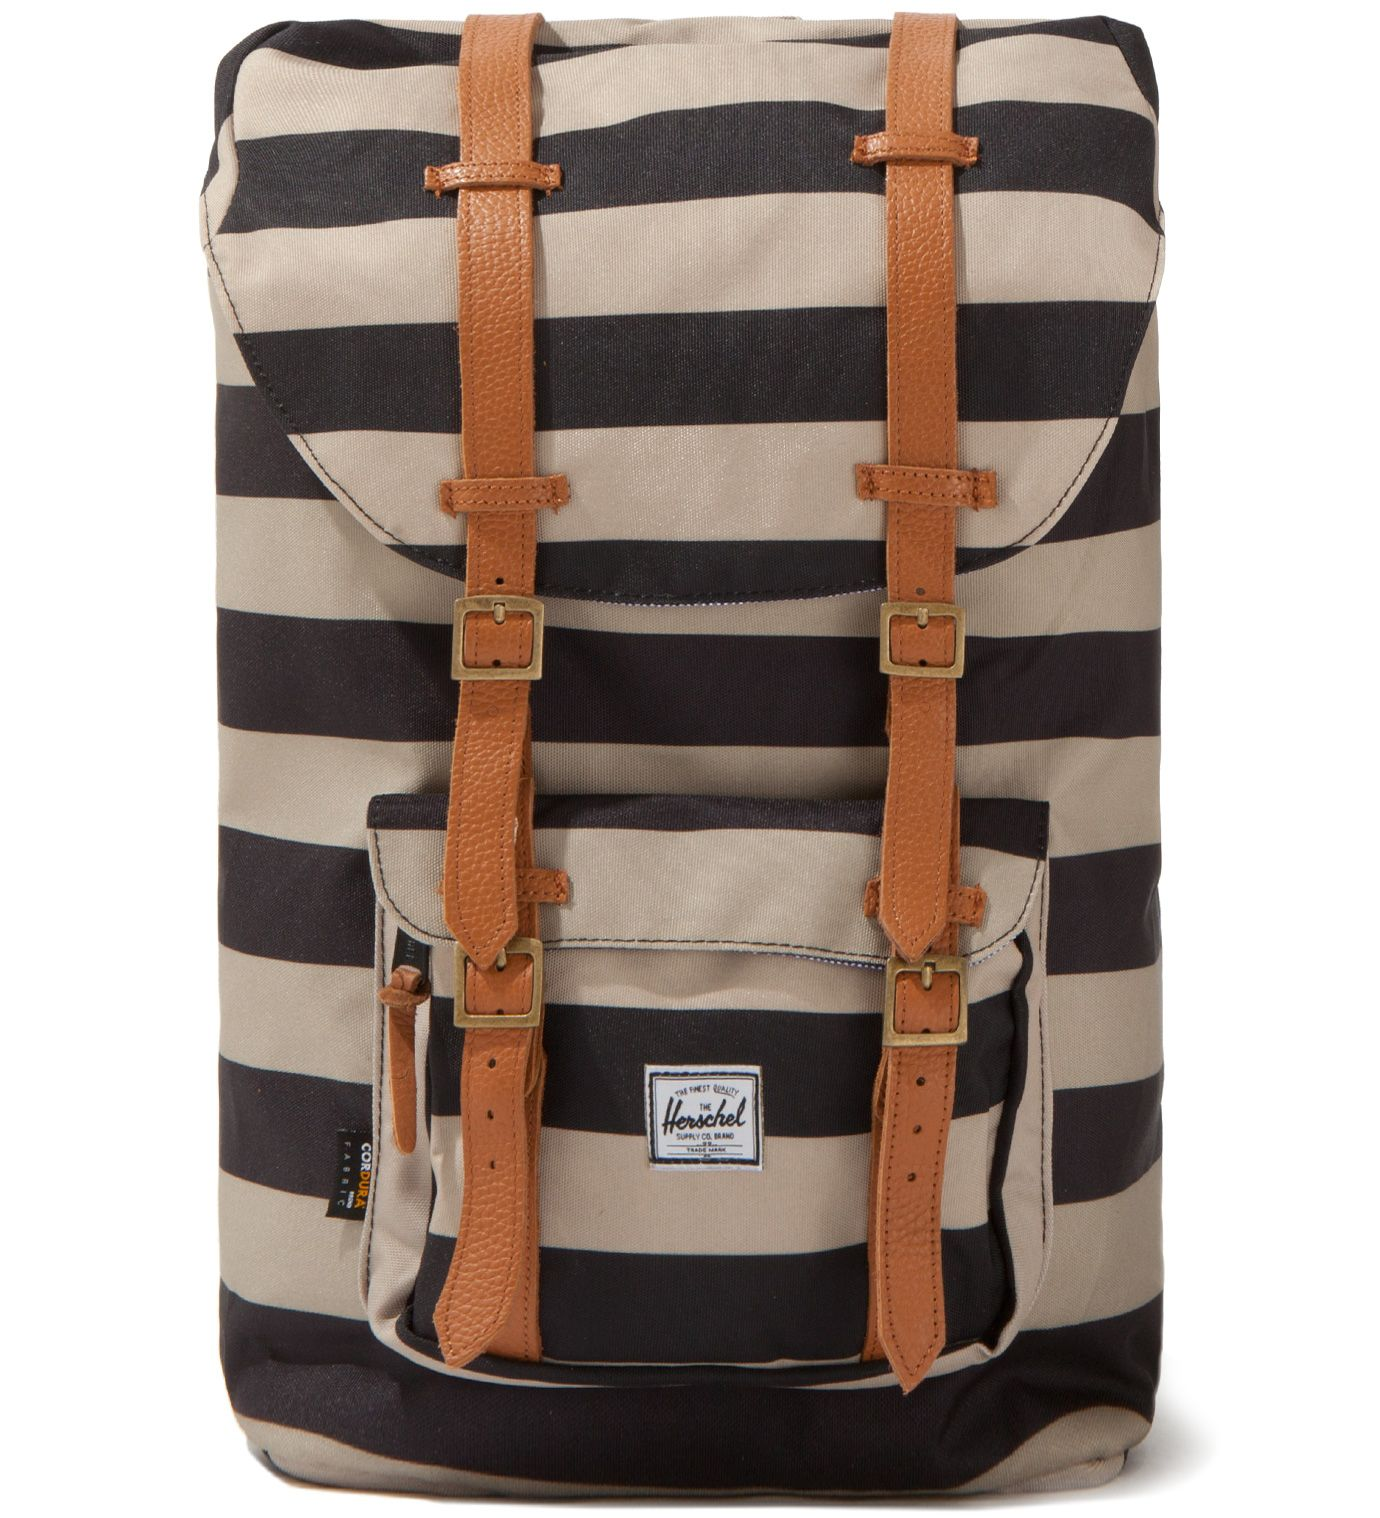 309349c8324 Herschel Black Taupe Little America Backpack. I like these colors and  patterns tomorrow